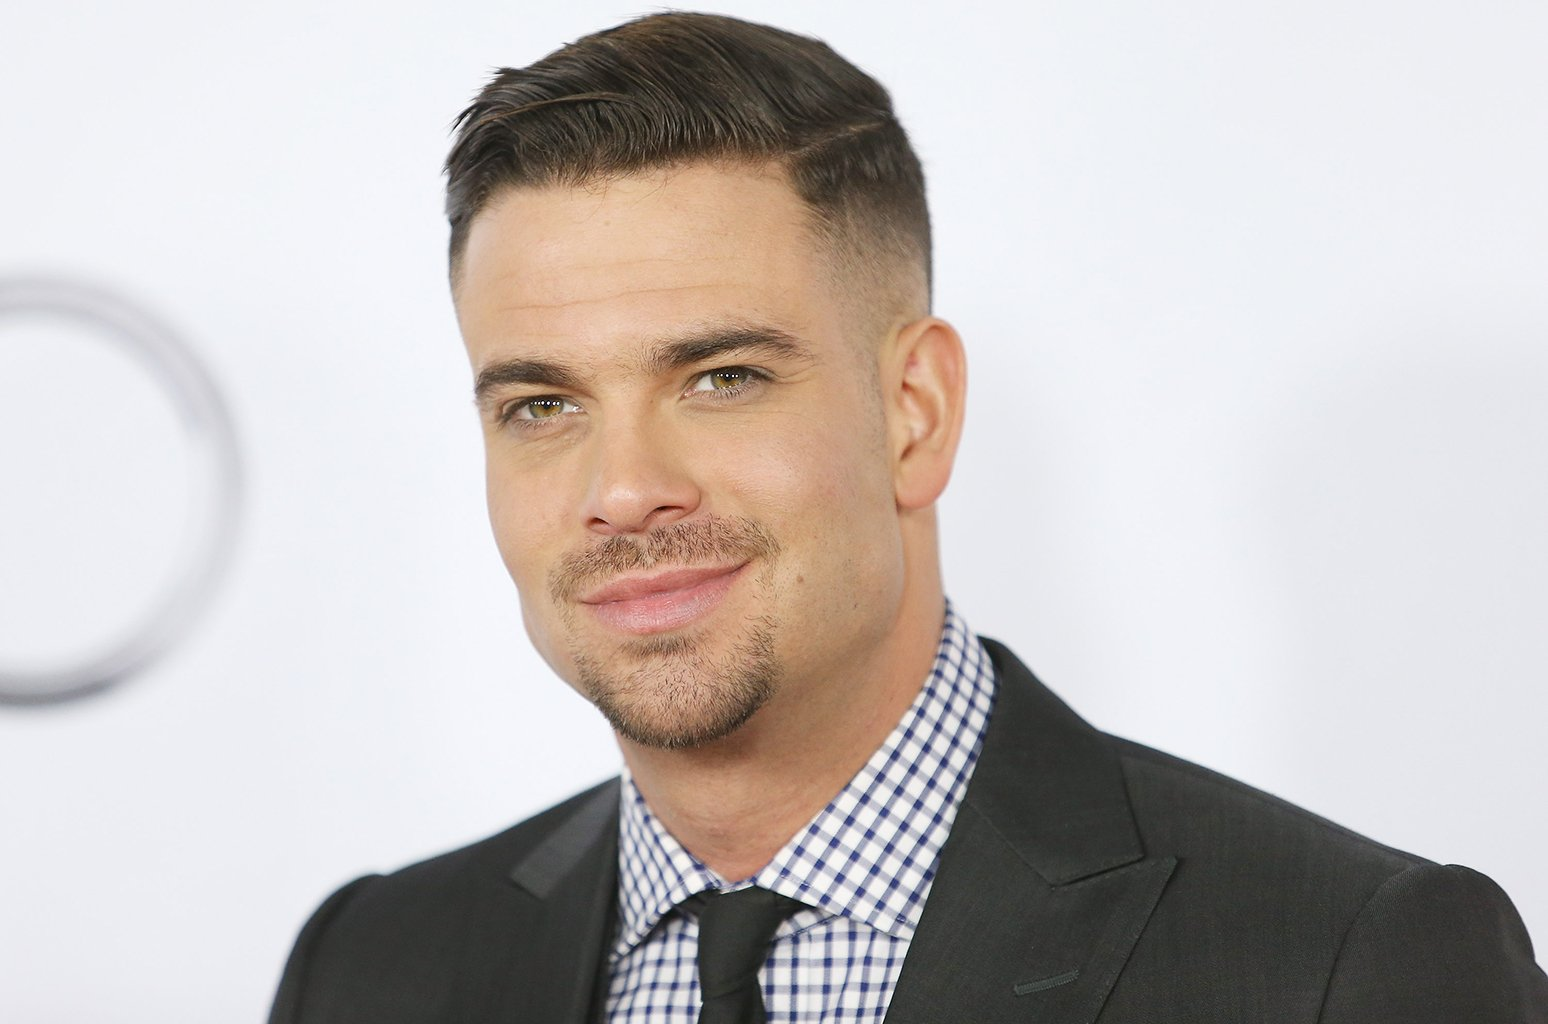 Mark Salling's toxicology report shows he had alcohol in his system when he died https://t.co/QdGorxc1LN https://t.co/Digh17sbvW